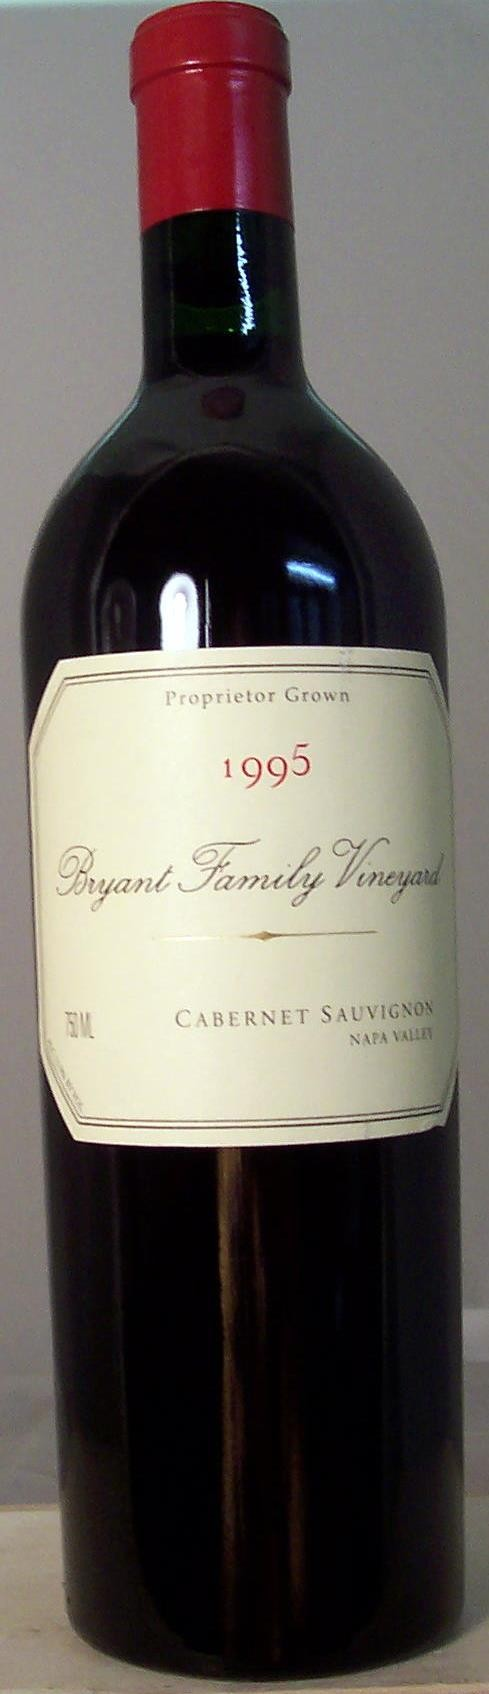 Bryant Family Vineyard Cabernet Sauvignon Napa Valley 1995